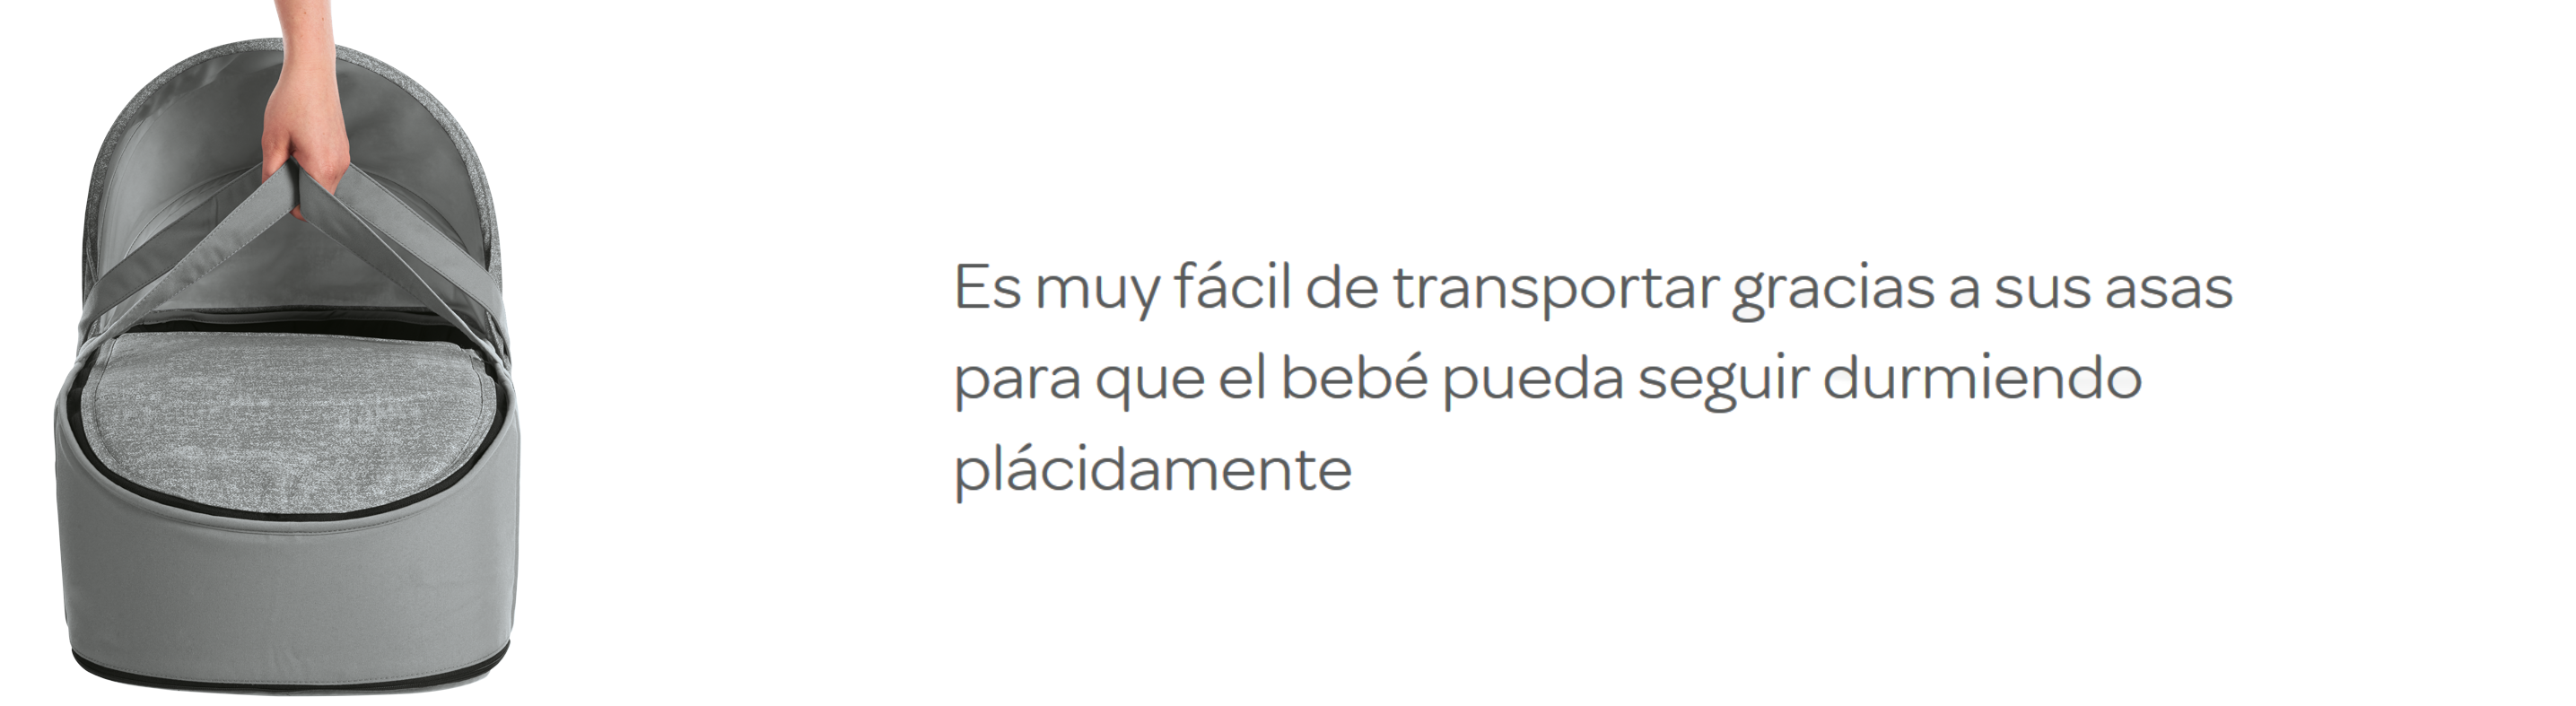 FACIL TRANSPORTE